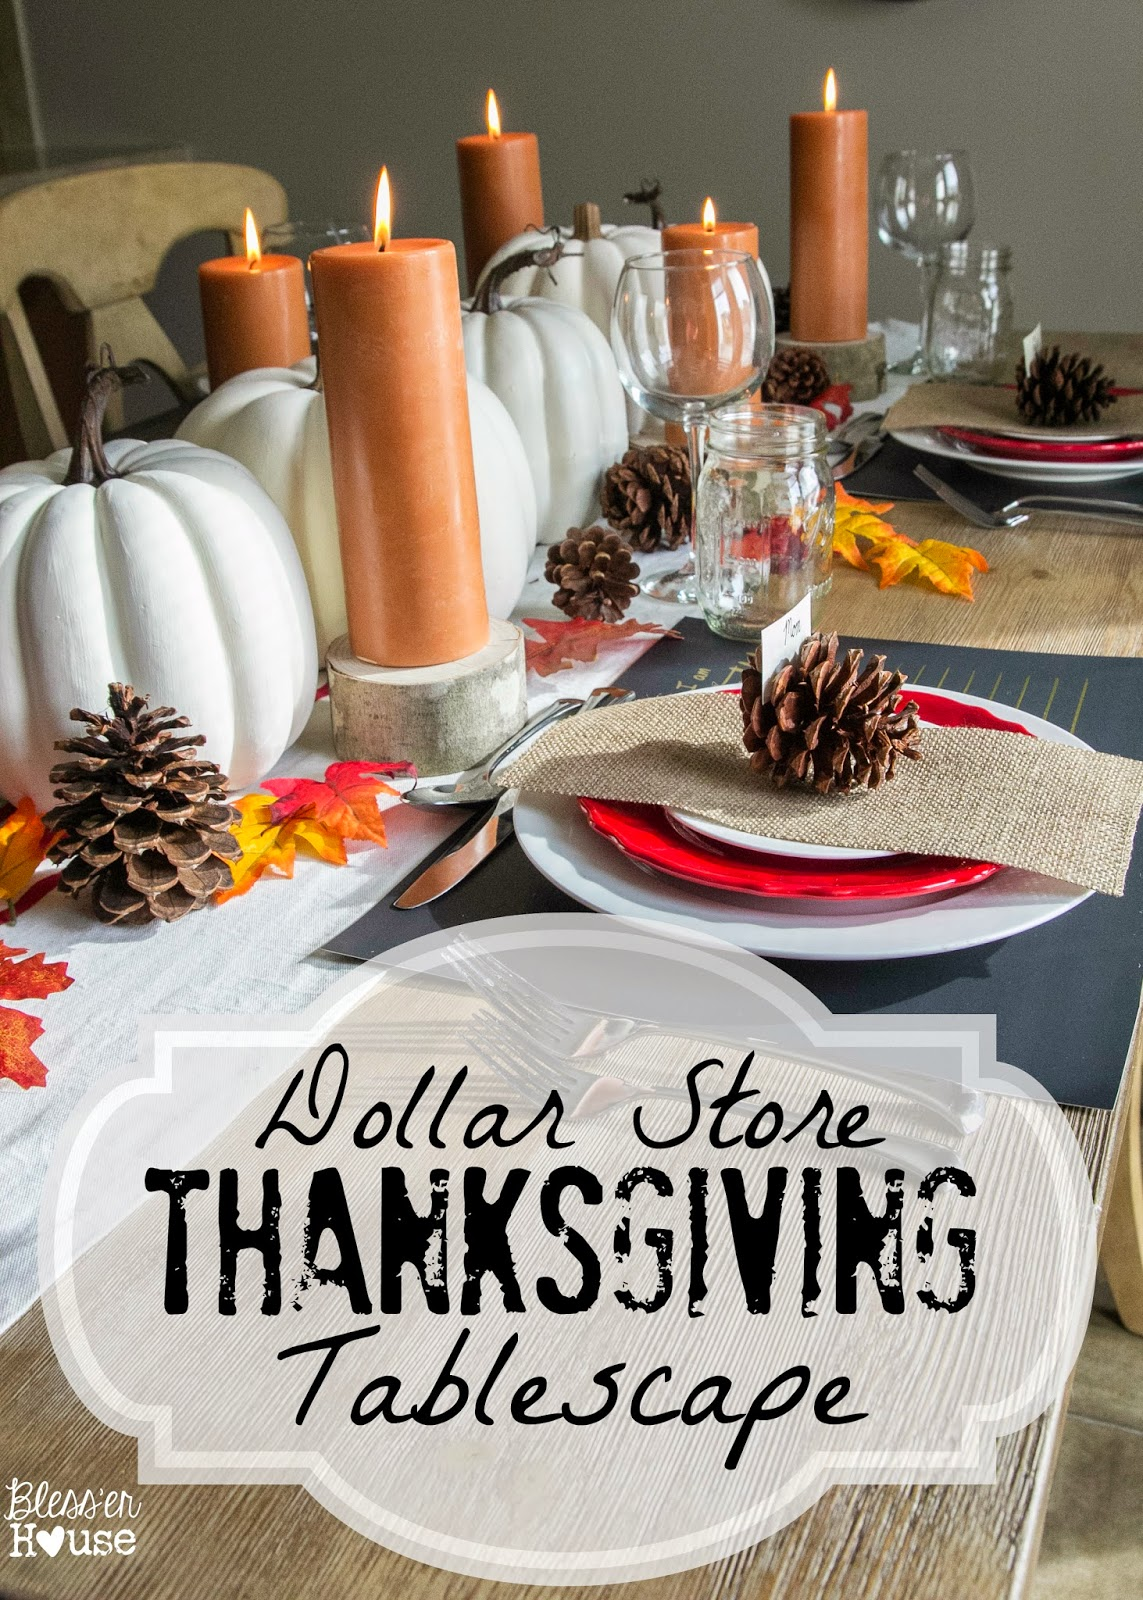 Dollar store thanksgiving tablescape bless 39 er house - Dollar store home decor ideas pict ...